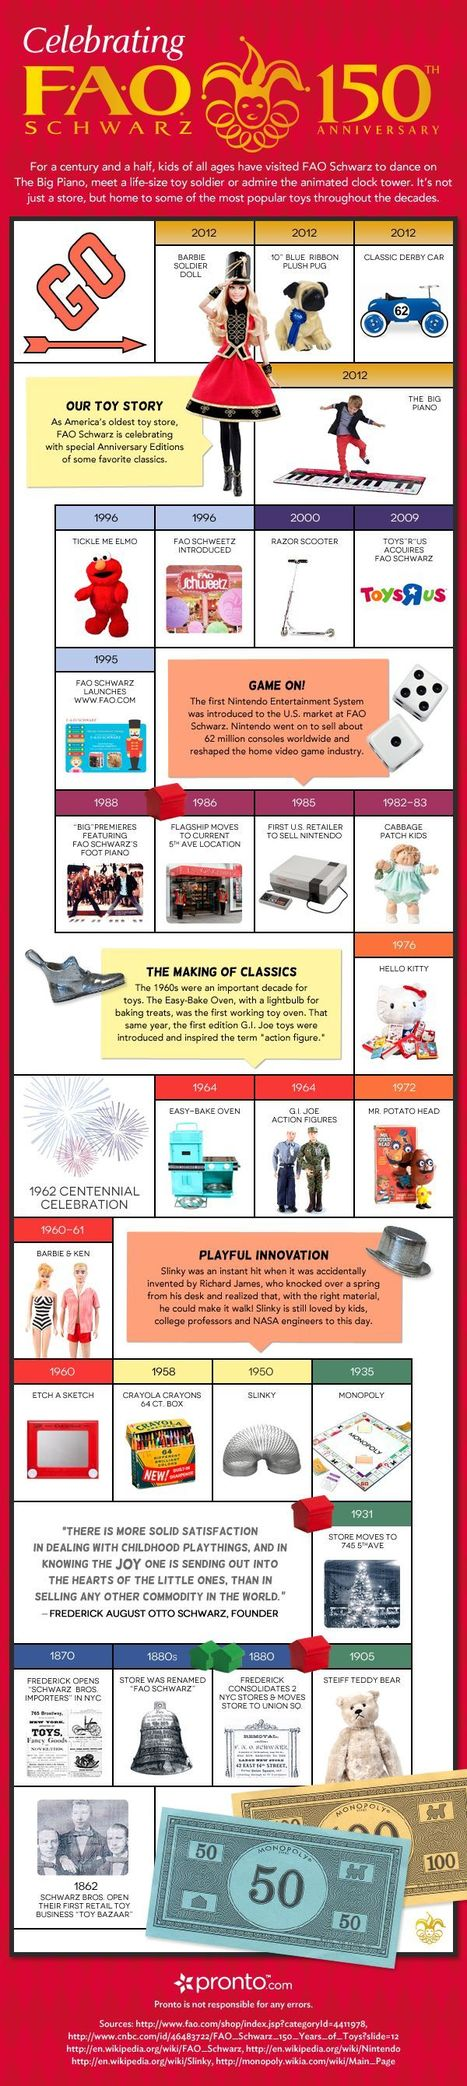 What was your favorite childhood toy? (infographic) | MarketingHits | Scoop.it